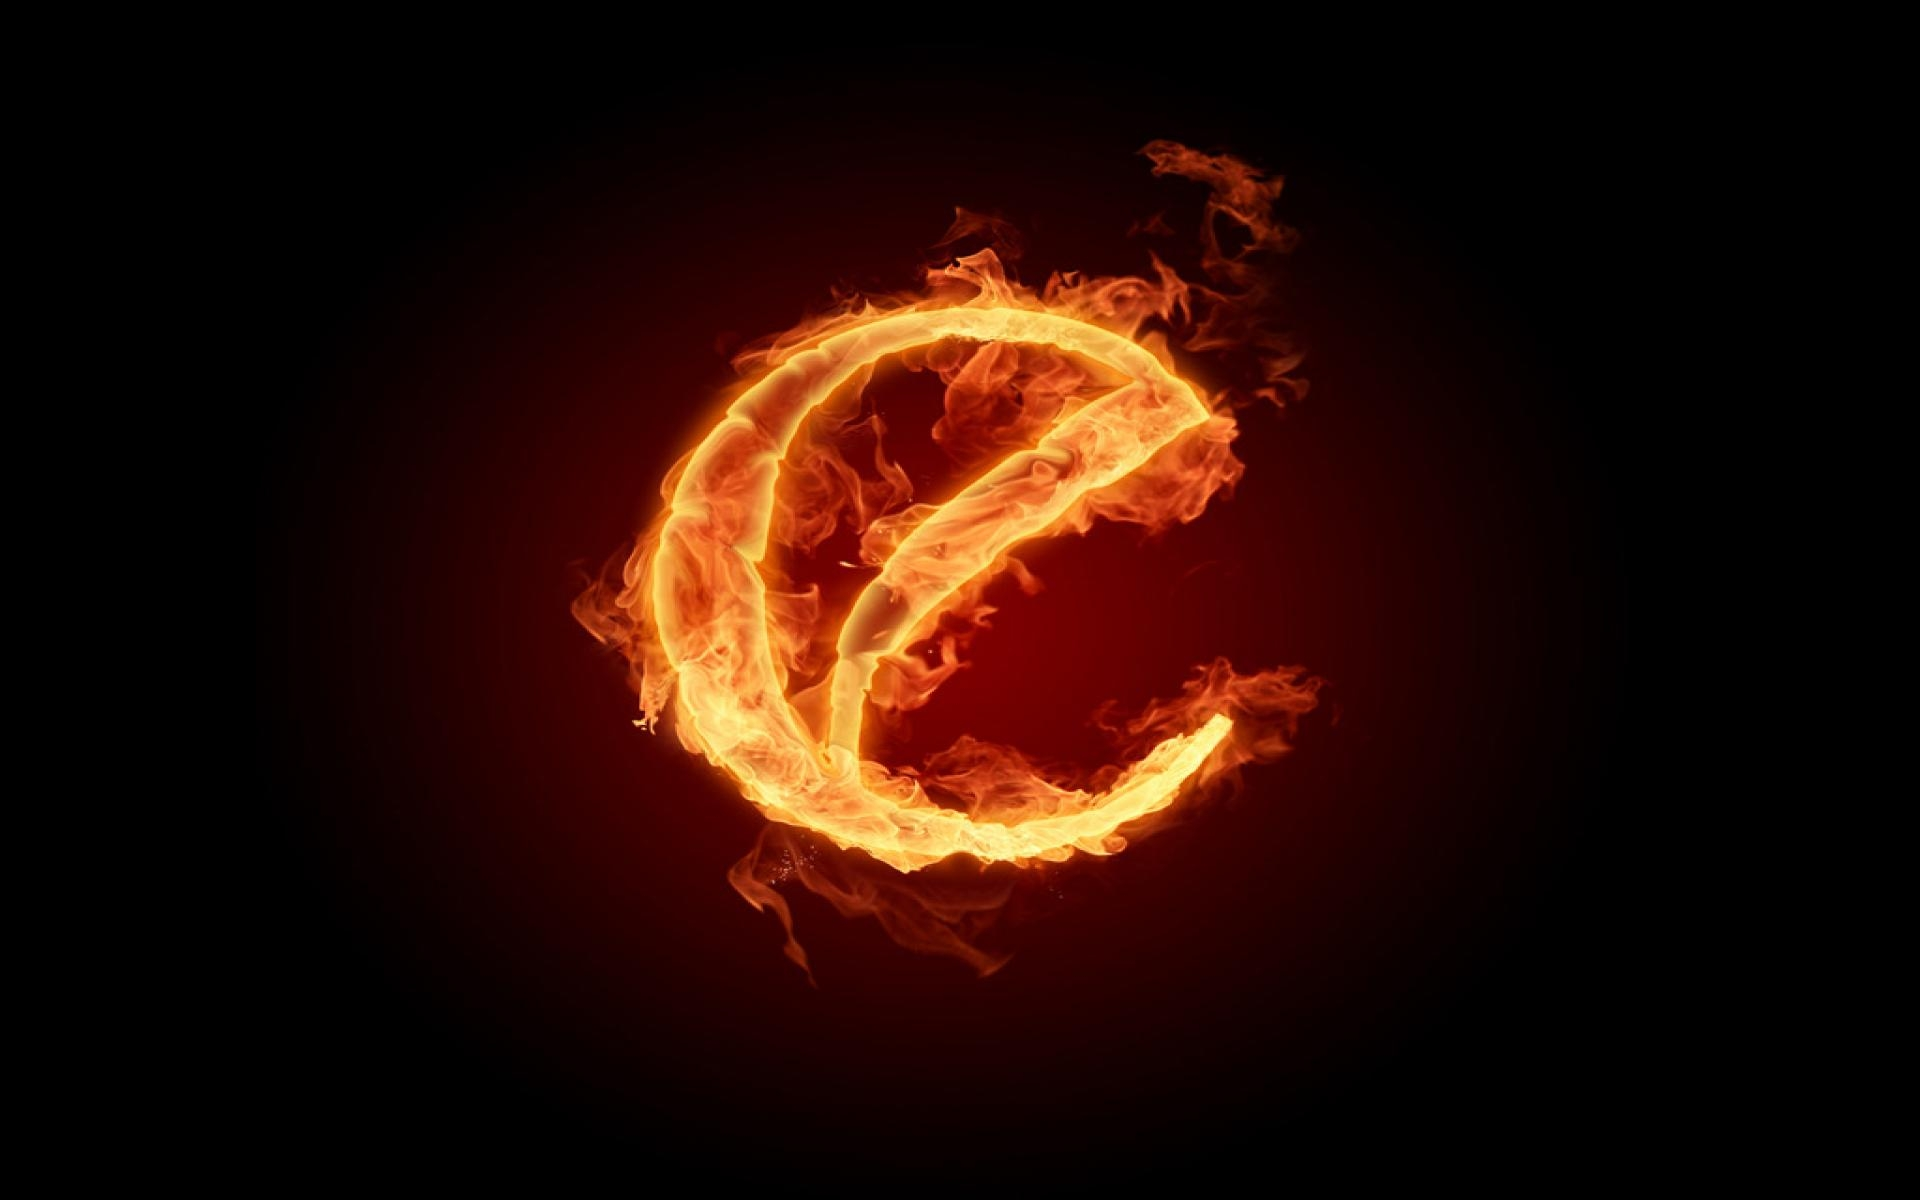 Hd Burning Fire Letter O Backgrounds Wallpapers 1920x1200